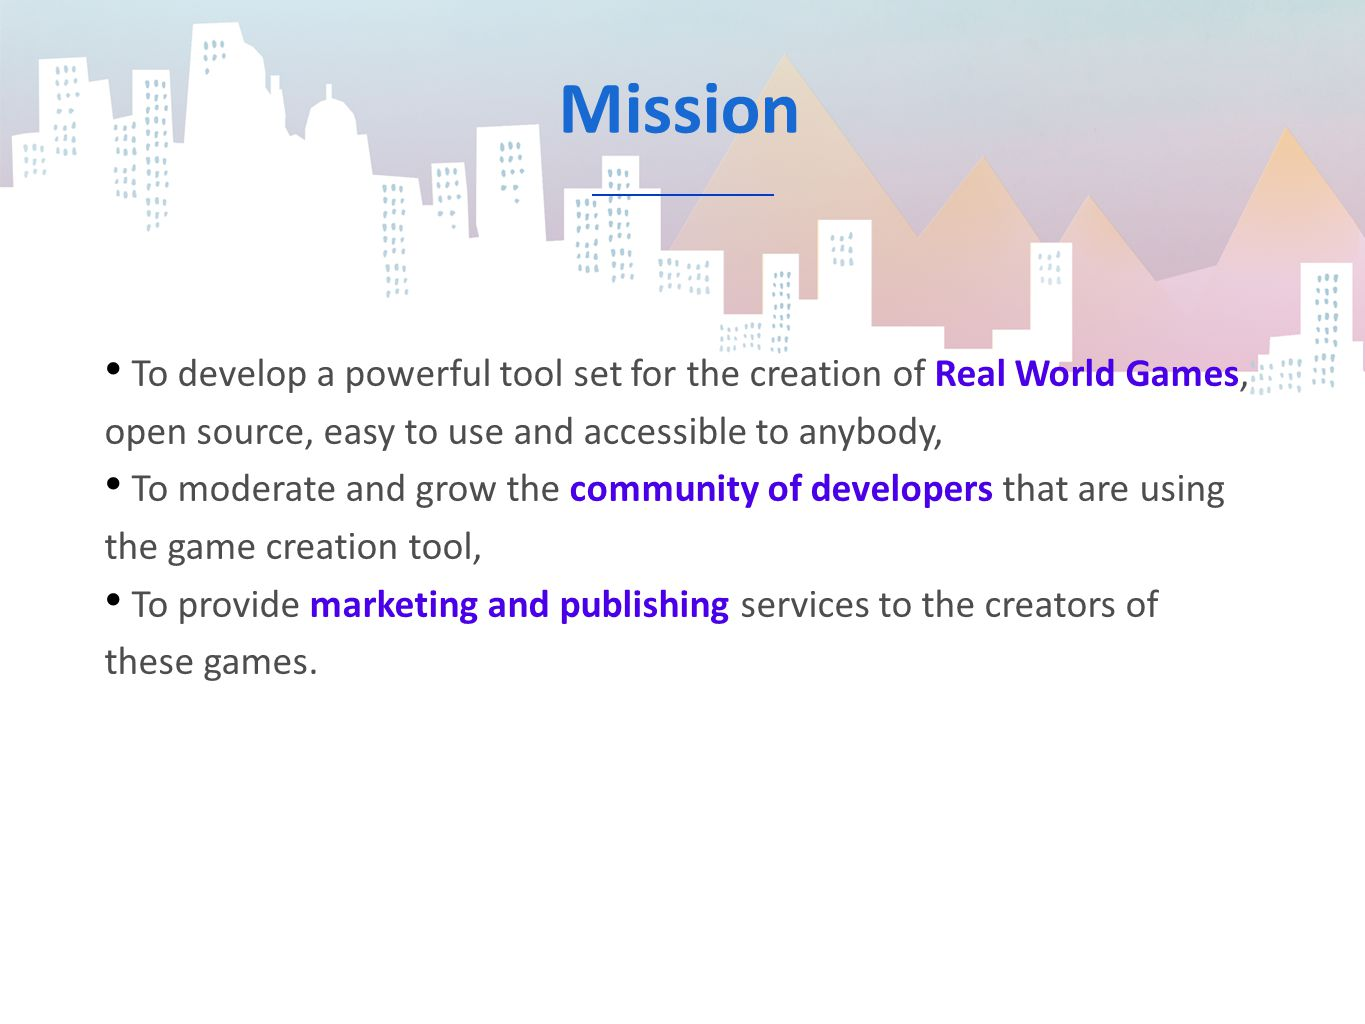 Mission To develop a powerful tool set for the creation of Real World Games, open source, easy to use and accessible to anybody, To moderate and grow the community of developers that are using the game creation tool, To provide marketing and publishing services to the creators of these games.